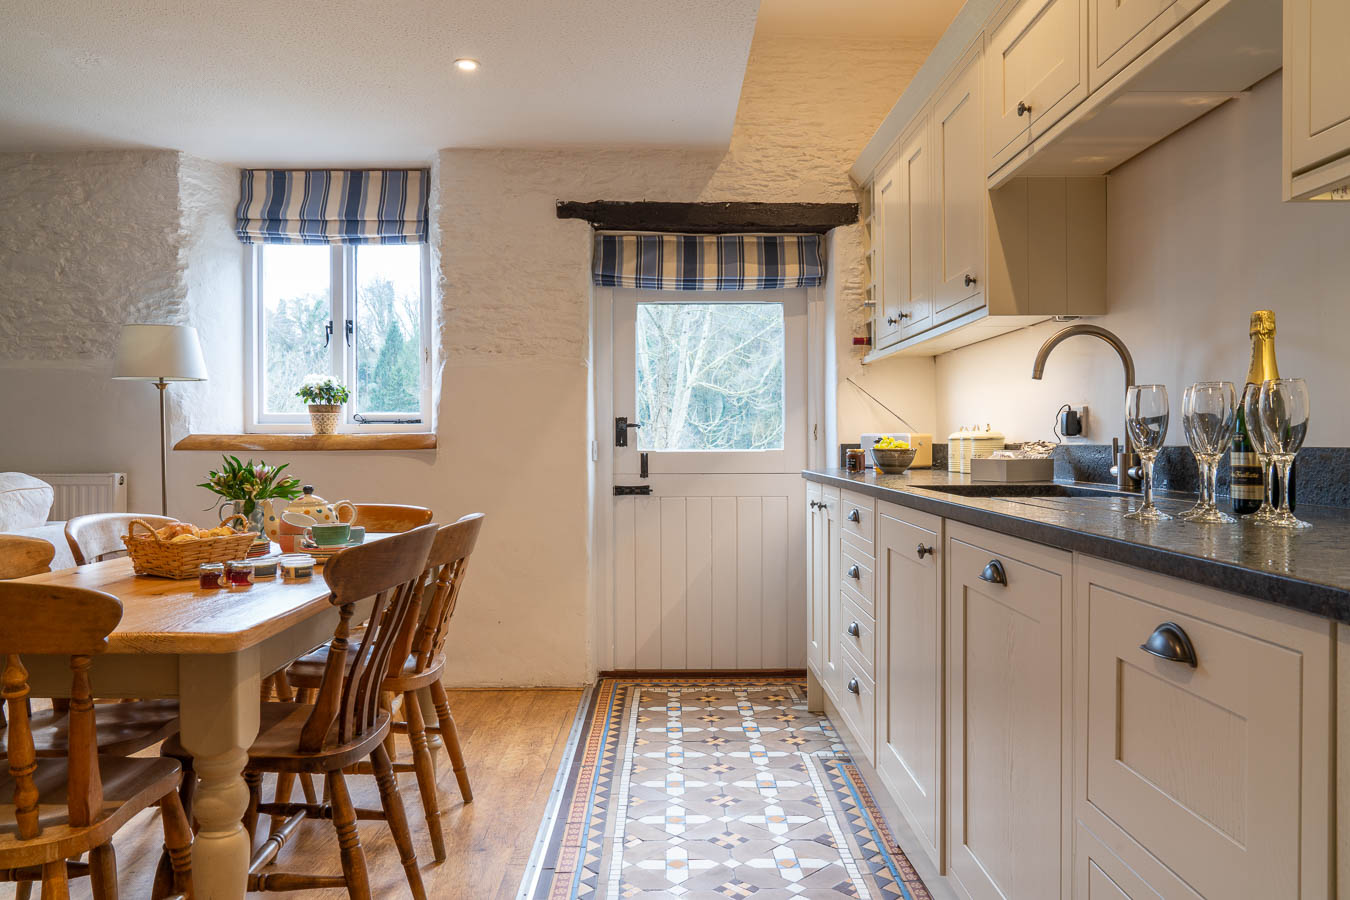 The well appointed Kitchen in The Sables Cottage at Flear Farm. With charming floor tiles and granite work tops the stable door looks out onto the private garden.